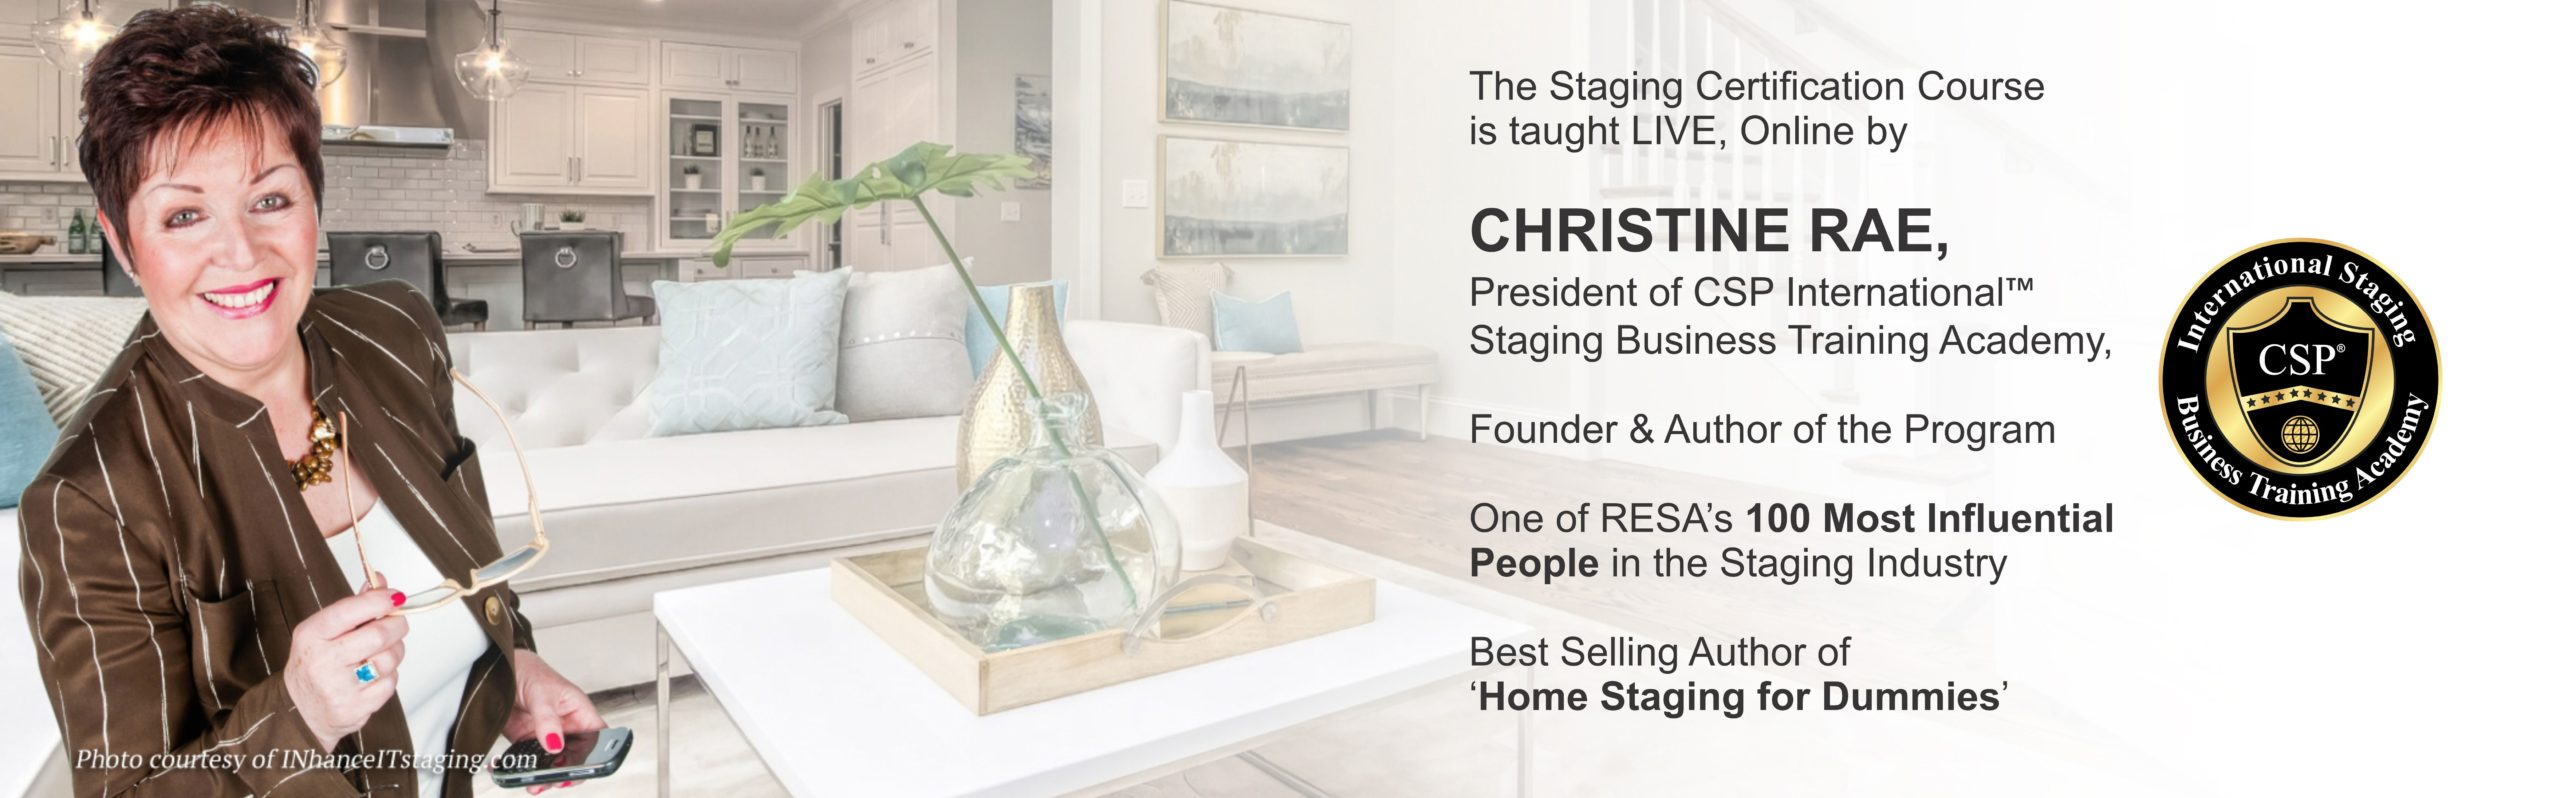 Christine Rae teaches LIVE online staging certification course